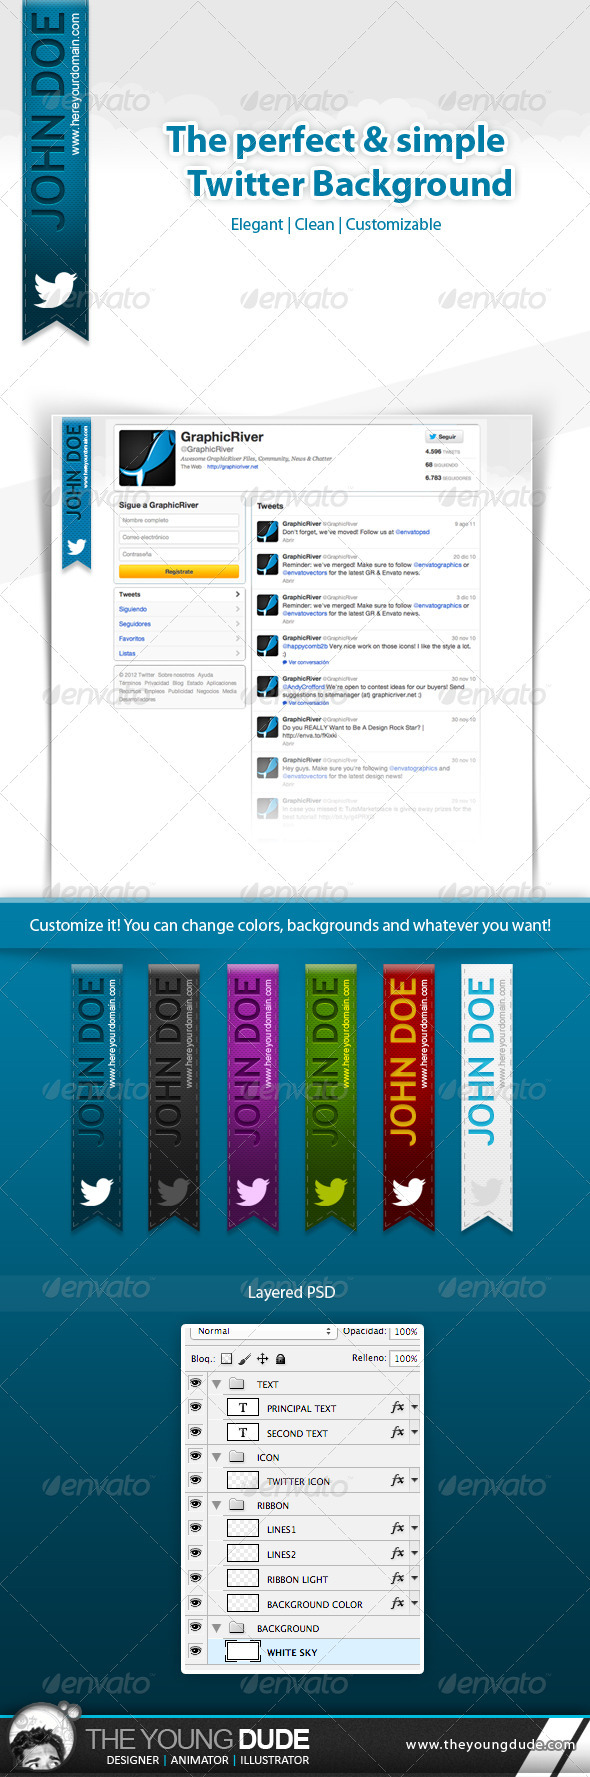 Simple and Clean Twitter Background - Twitter Social Media